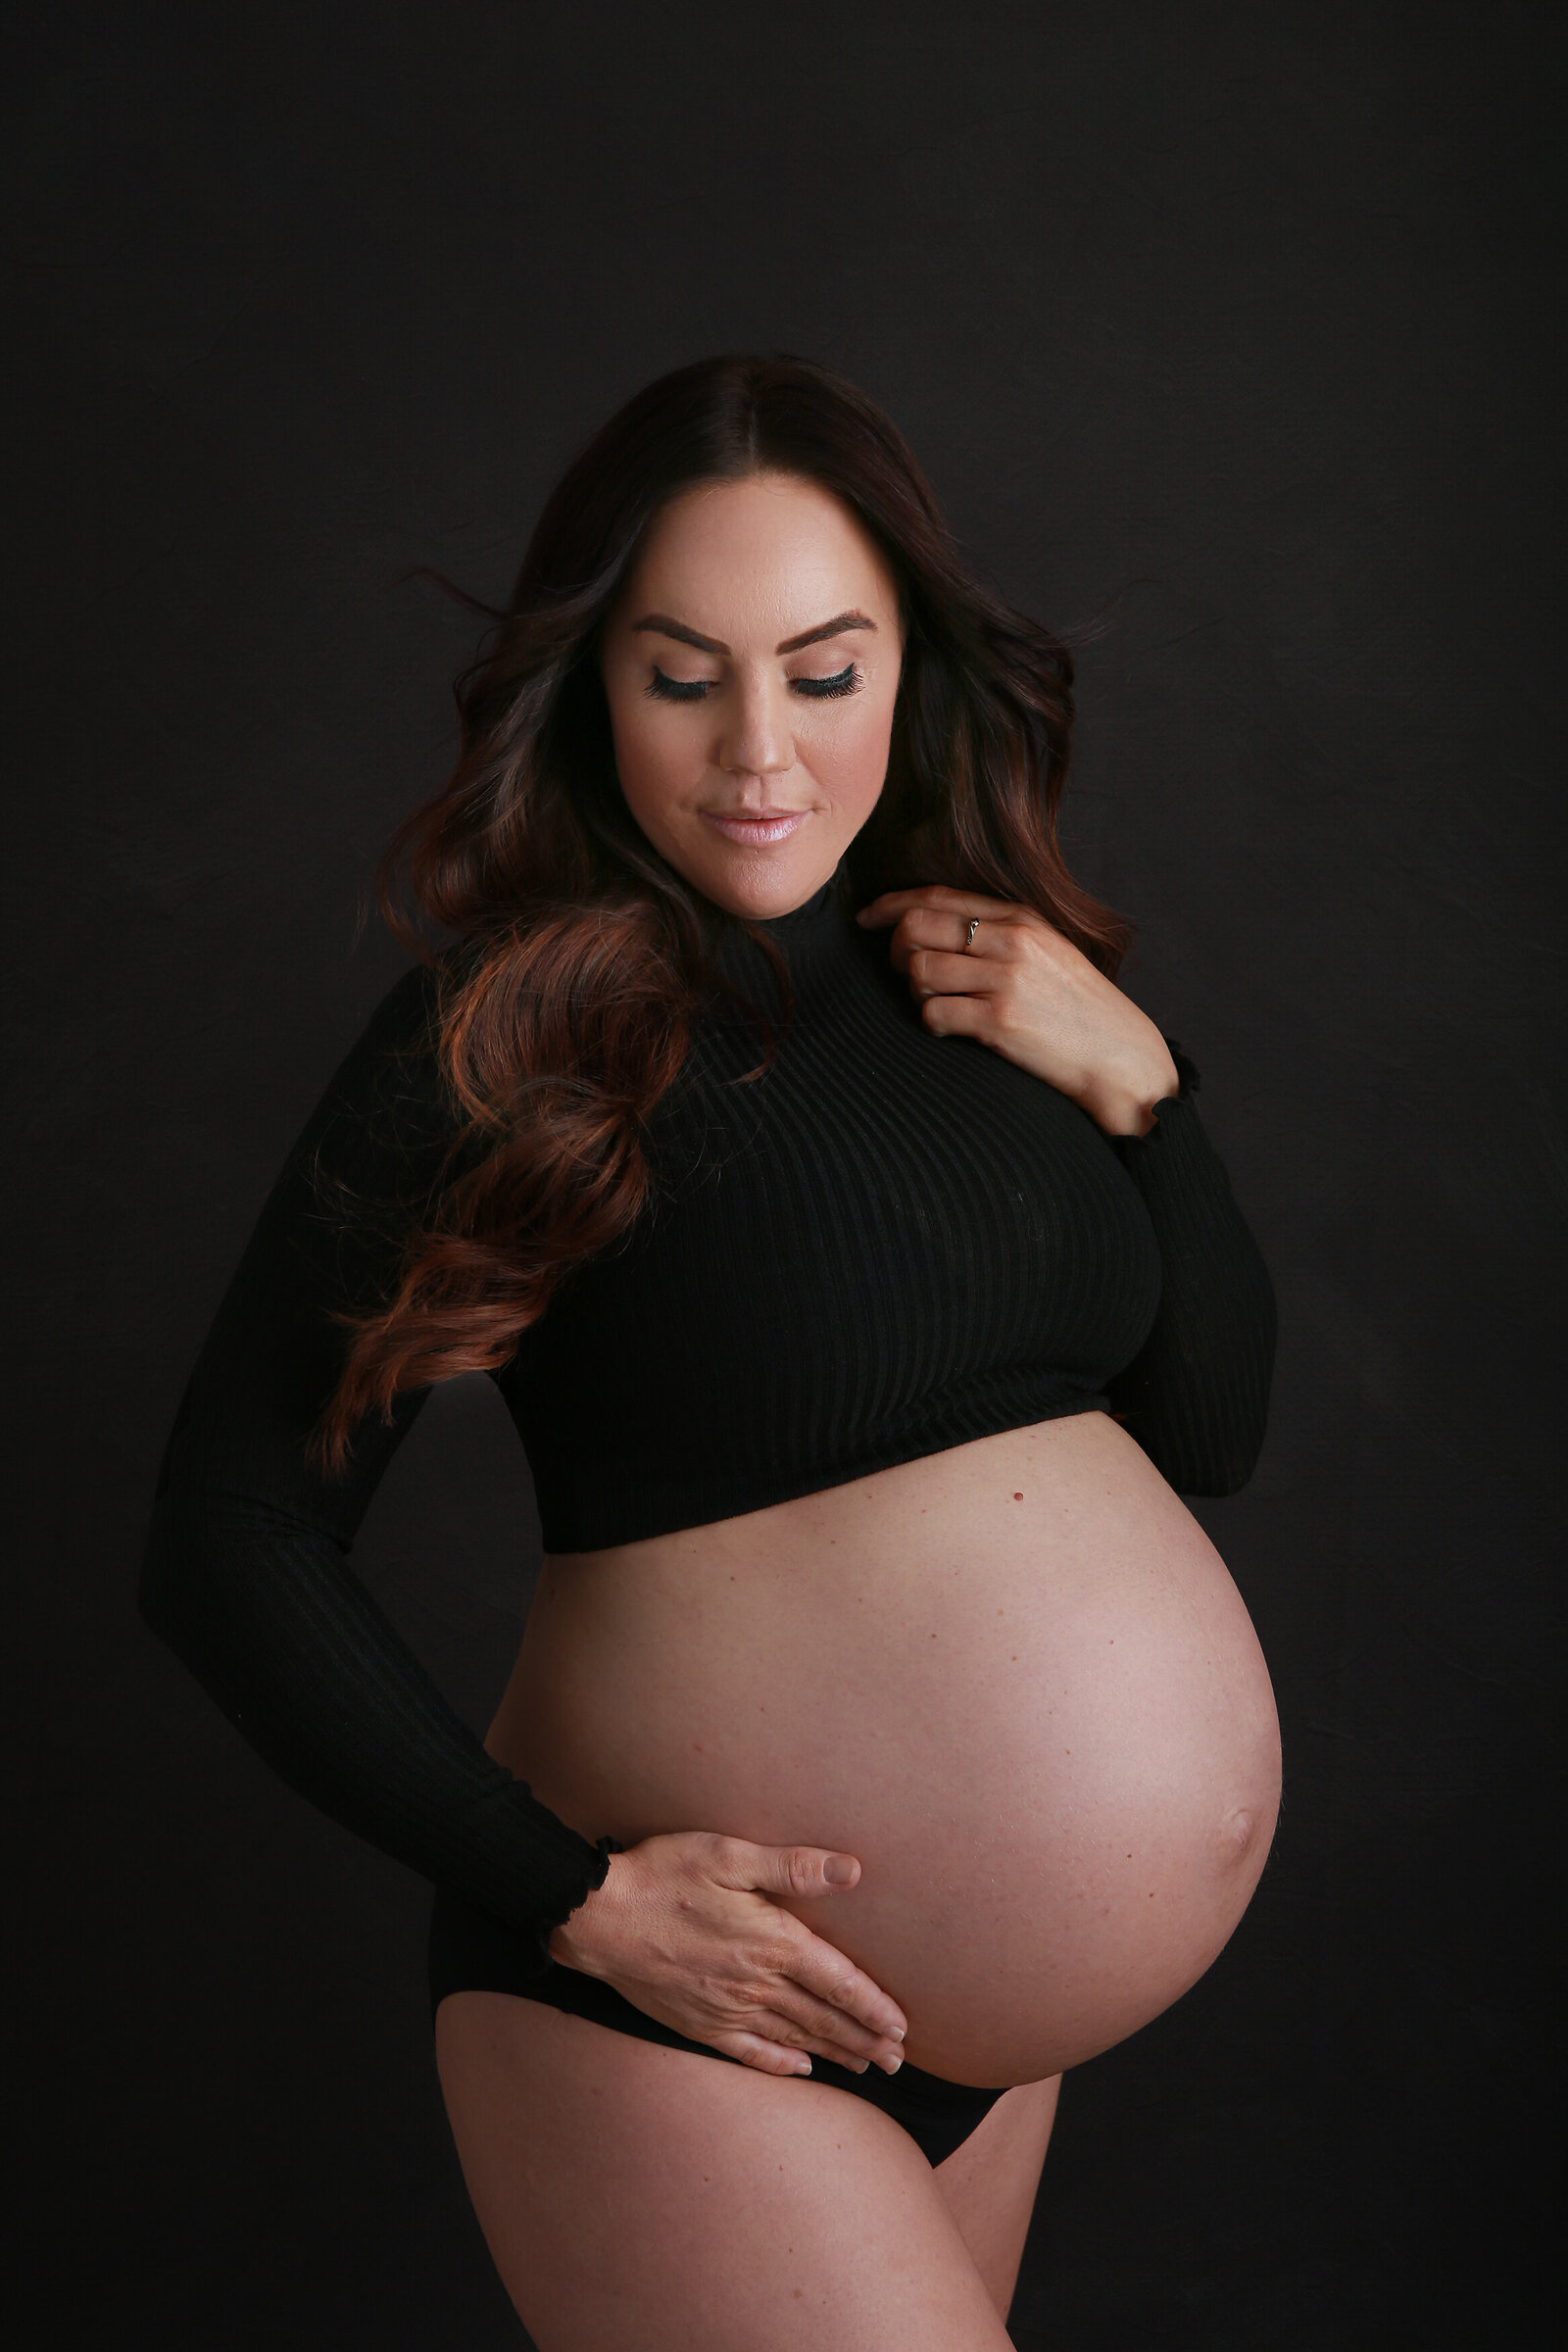 Professional maternity portrait in-studio, brunette pregnant lady holding belly